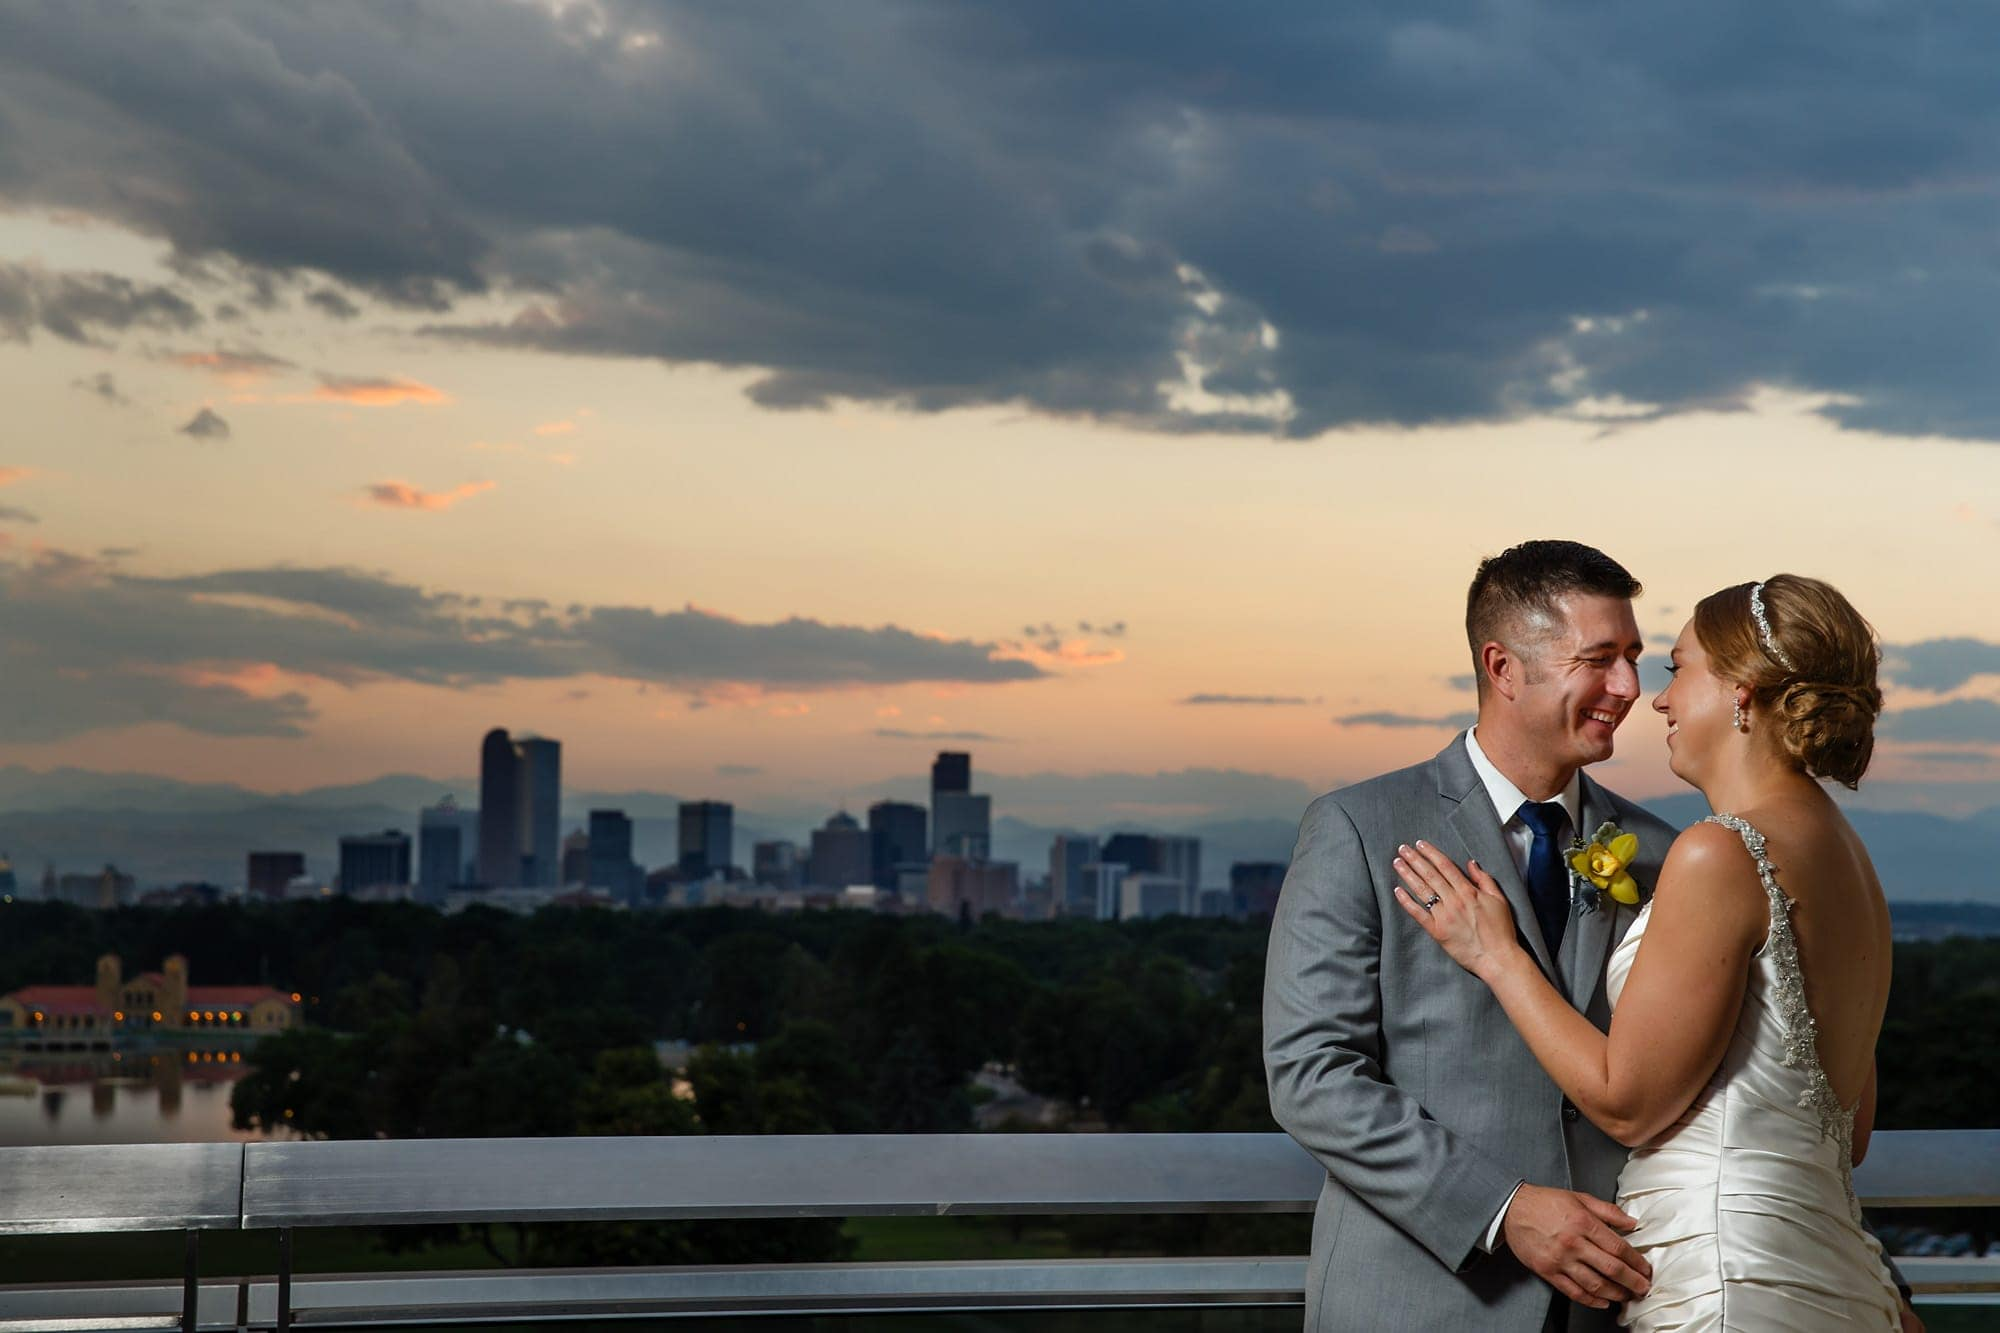 The couple pose for a portrait with the Denver skyline and City Park behind them after their wedding ceremony